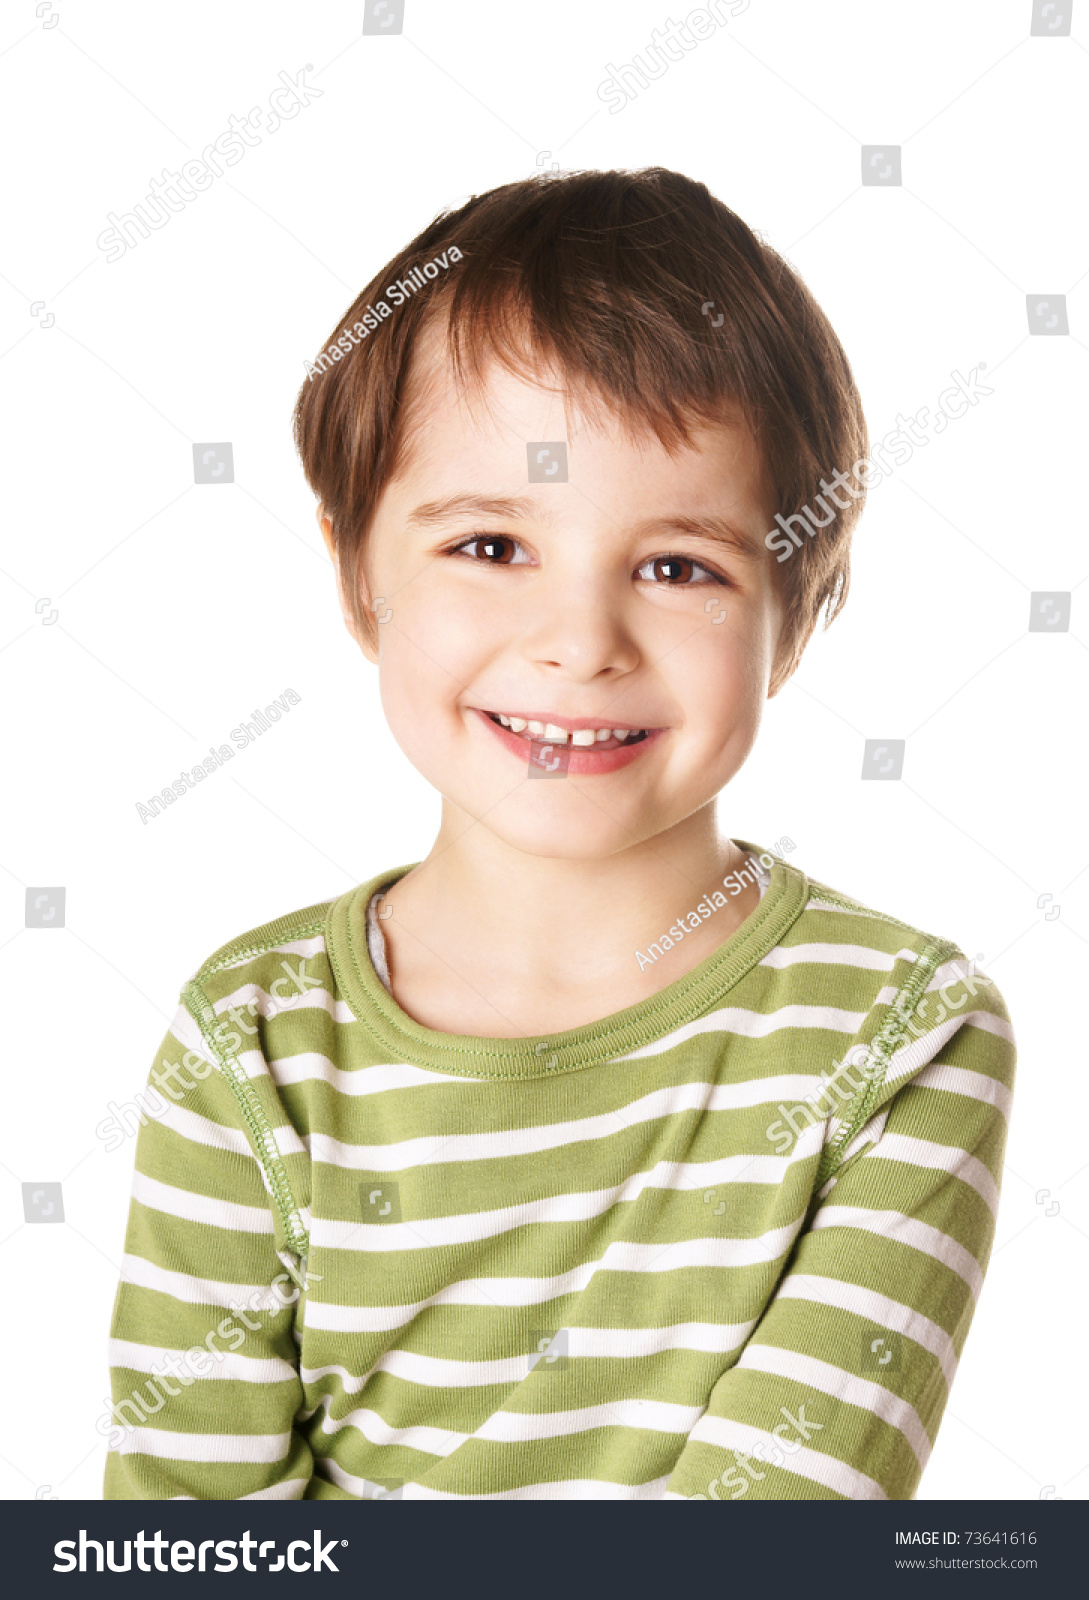 Cute Stock Photography: Cute Smiling Happy Little Boy Isolated On White Background